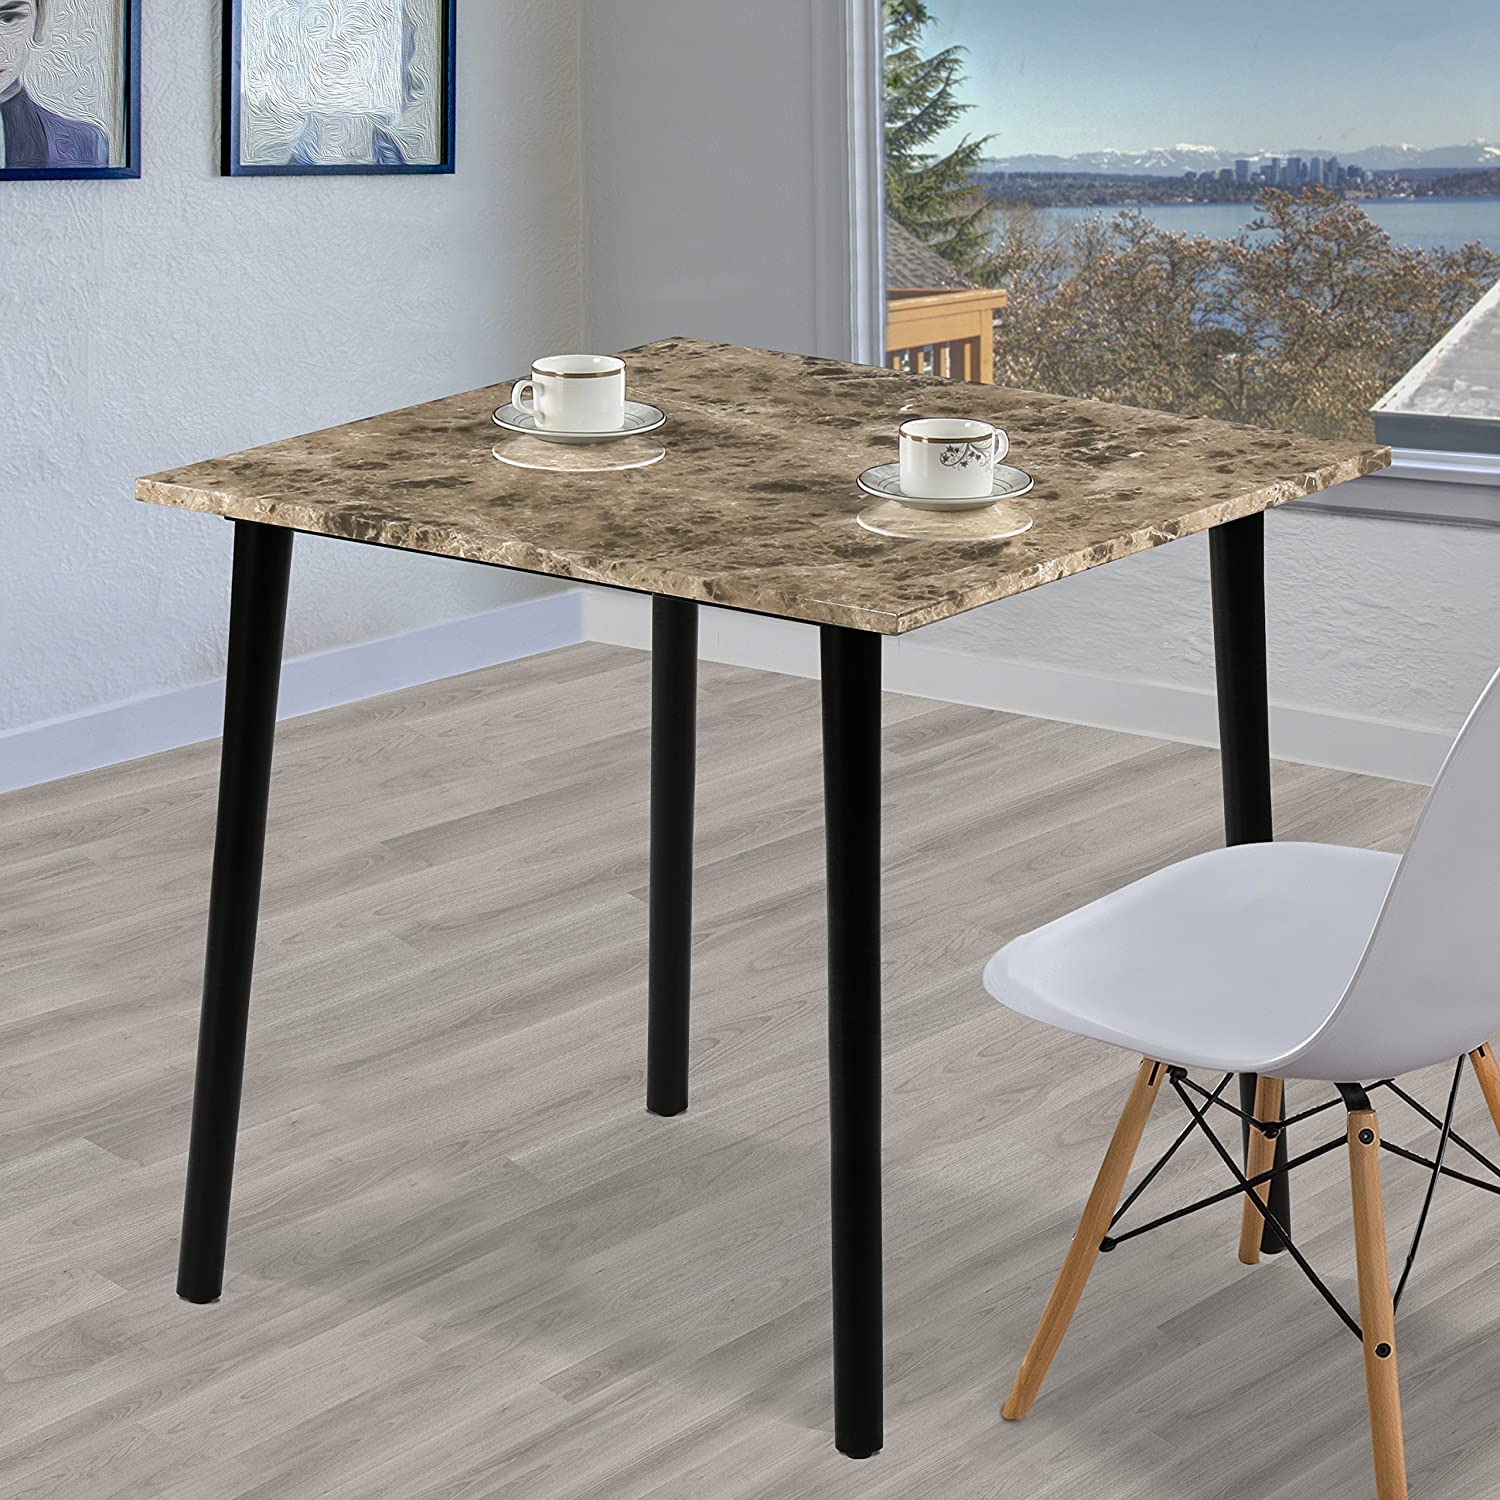 Olee Sleep Square Dining Table with Faux Marble Top, Crema Cappuccino